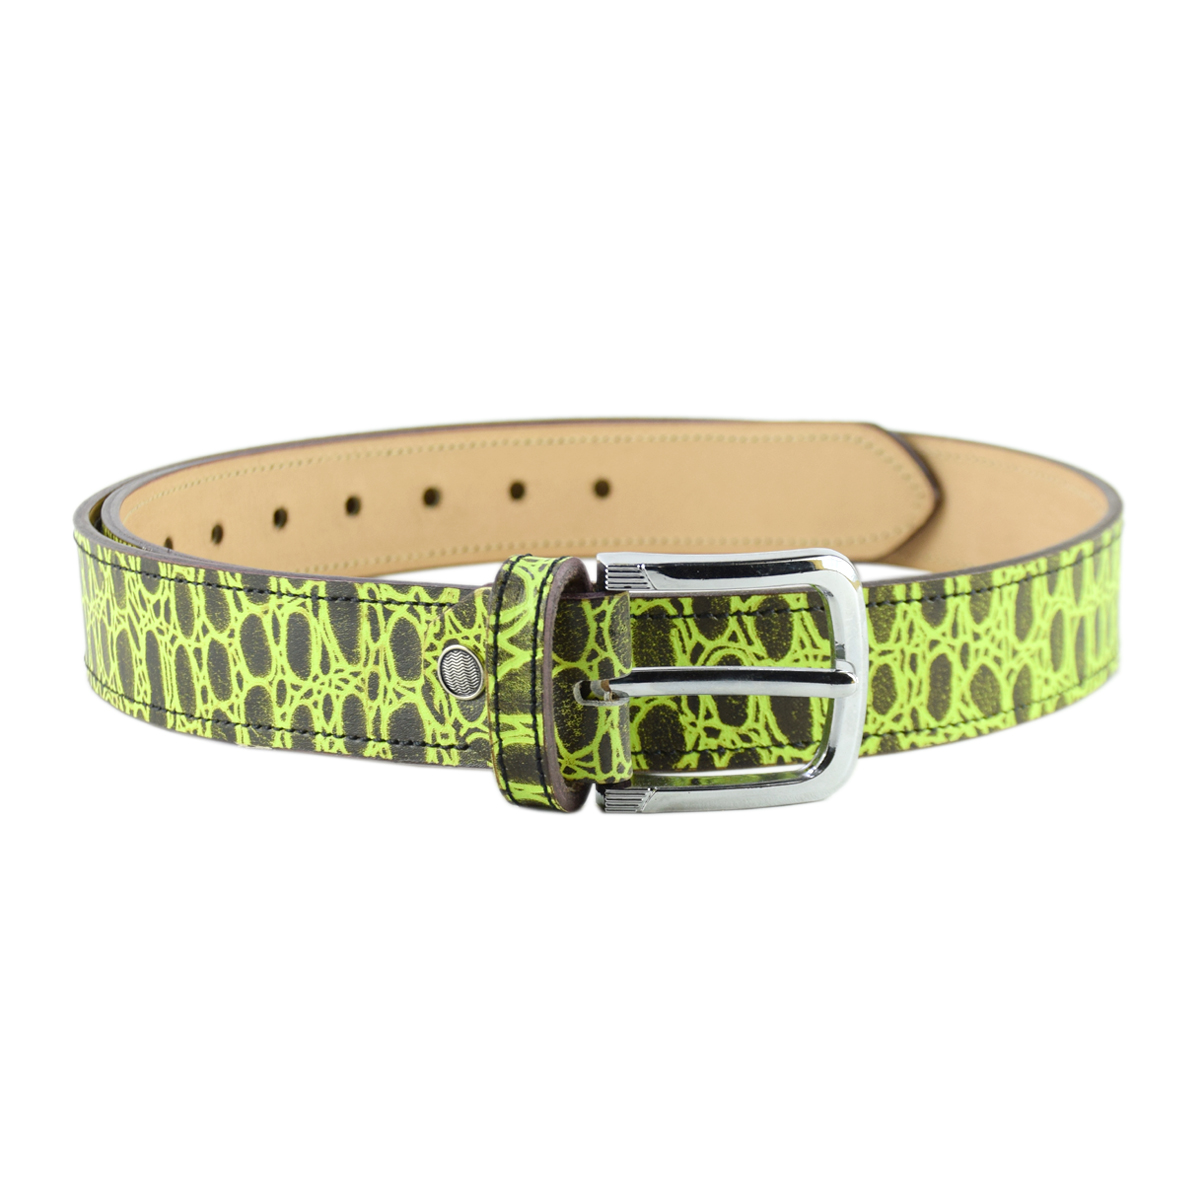 Printed Casual/Fancy Leather Belt 1.5""